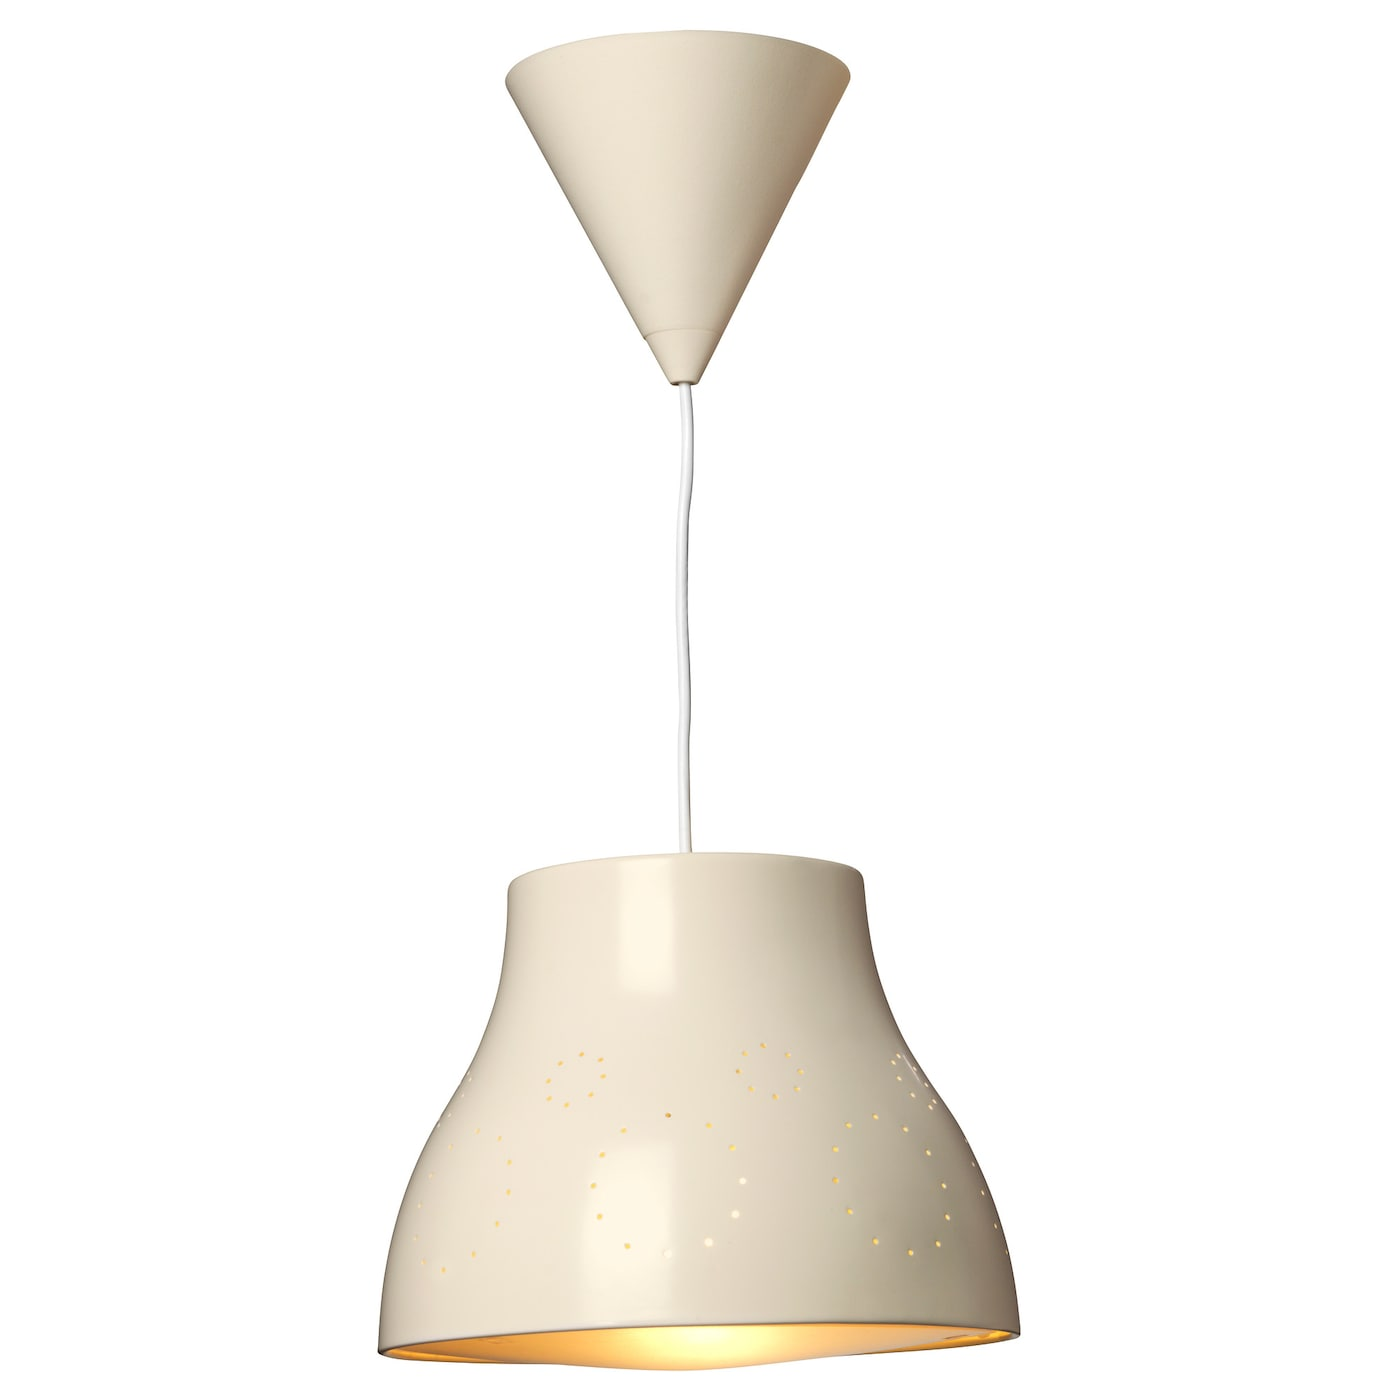 IKEA SNÖIG pendant lamp Safety tested and tamper-proof to protect little fingers.